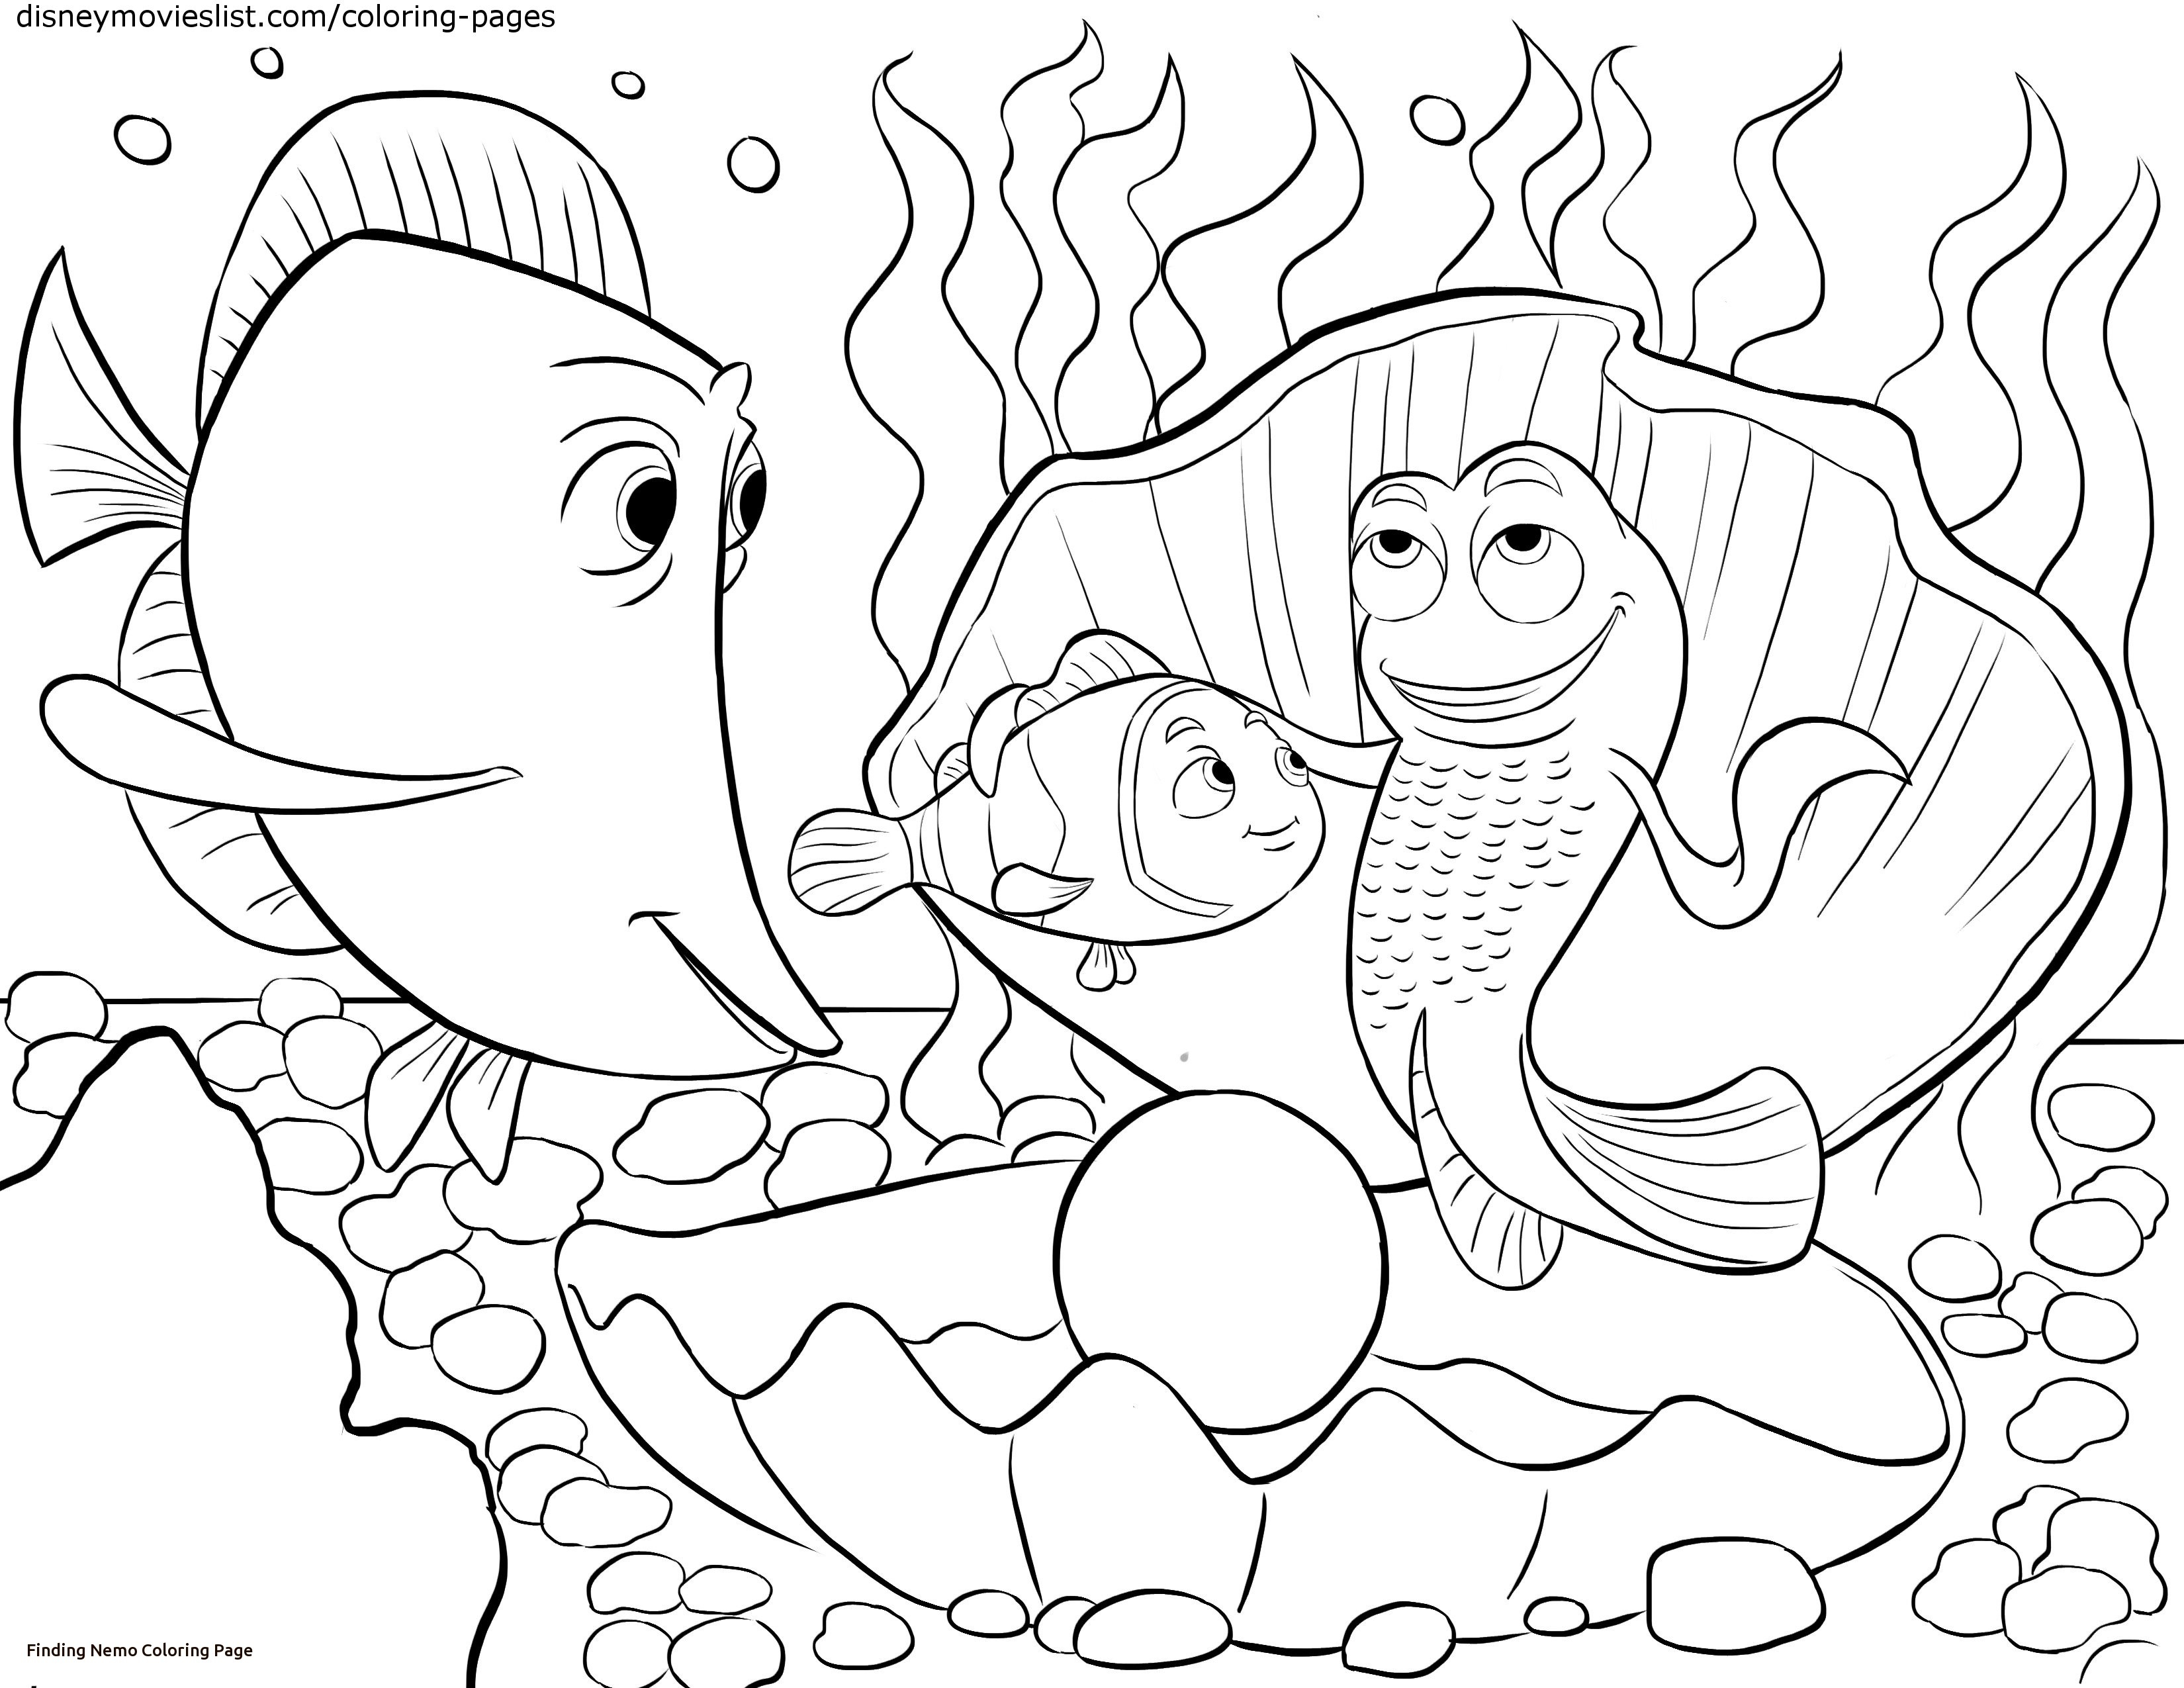 3300x2550 Nemo Coloring Page Disney S Finding Nemo Coloring Pages Sheet Free